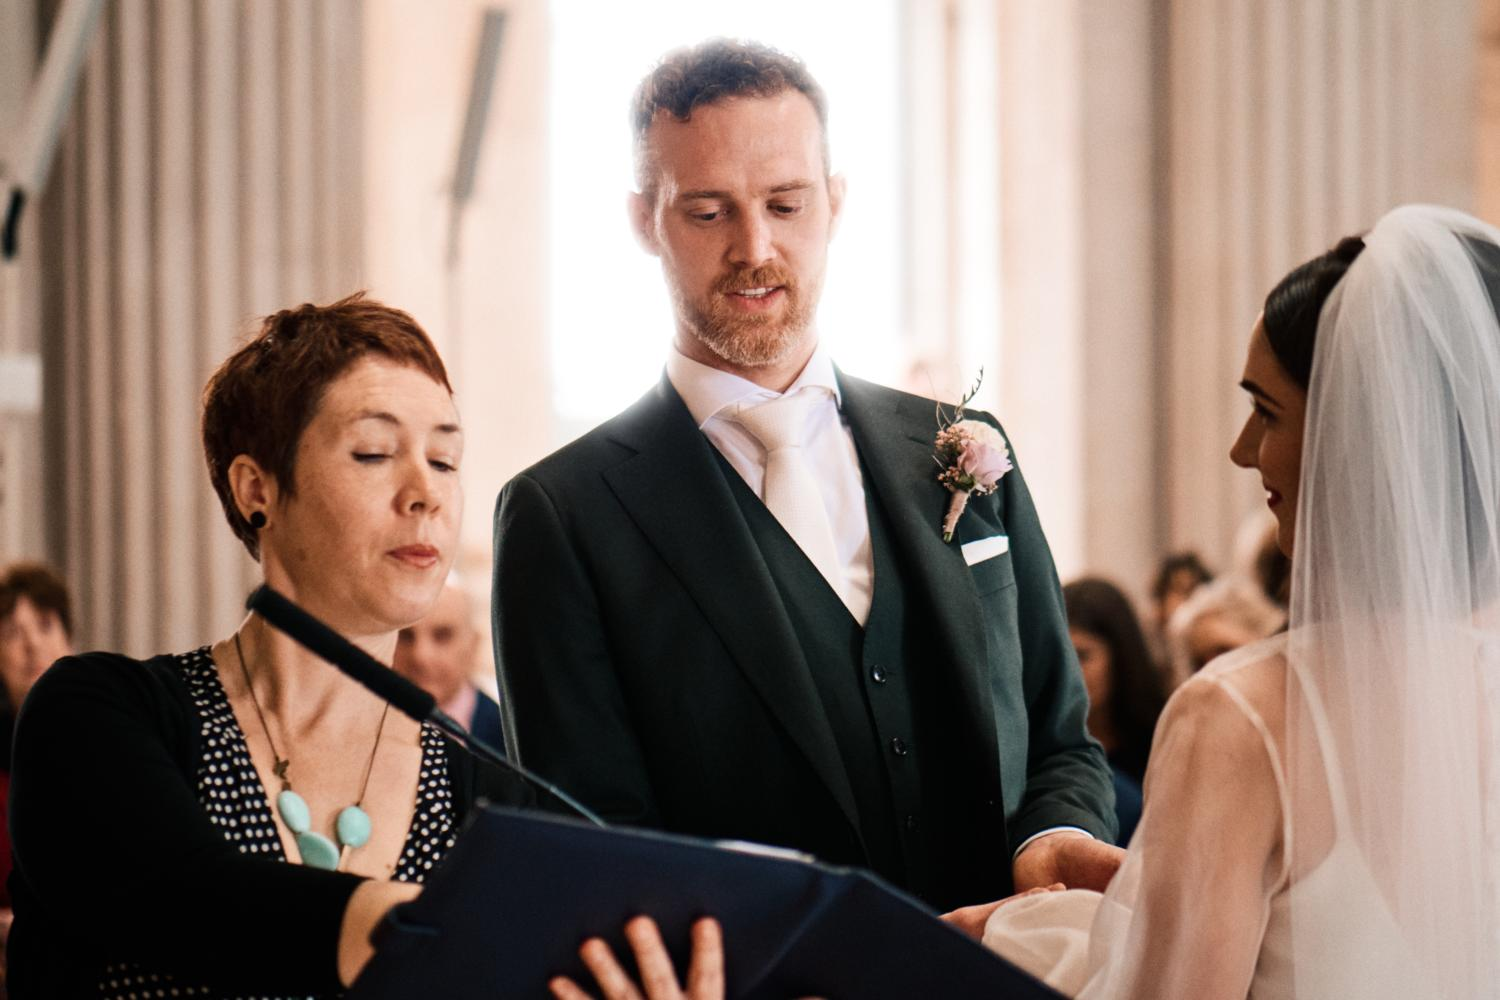 A groom reads vows during a Humanist ceremony at Dublin City Hall